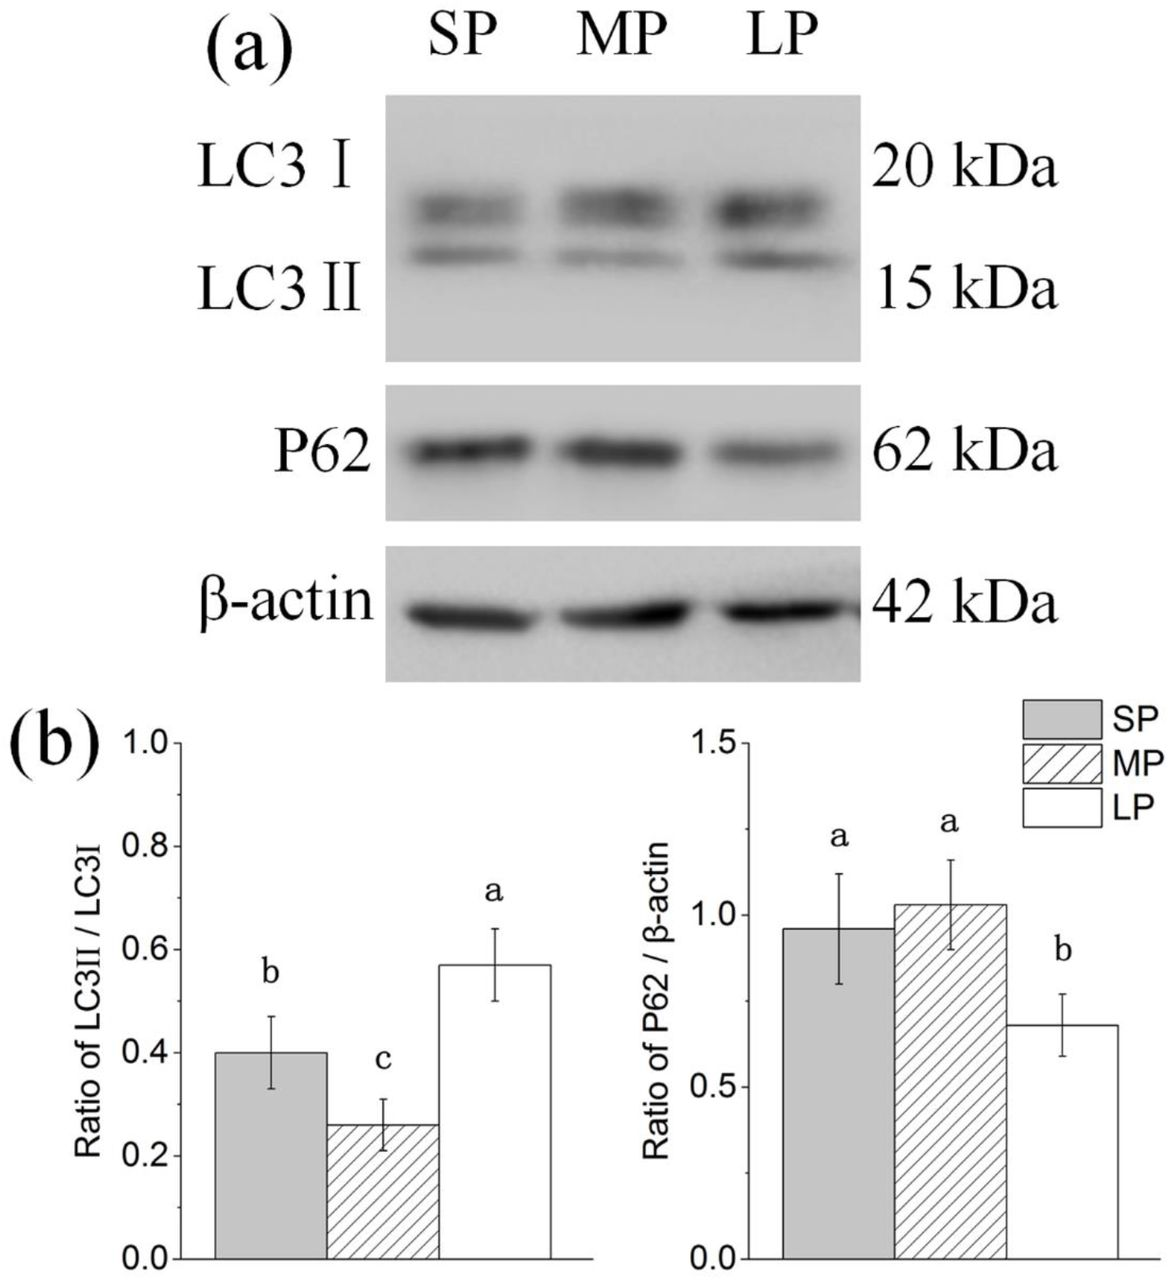 Changes in protein levels of autophagy related factors in HG of hamsters in three different photoperiodic groups (a) Representative immunoblots of LC3, P62, and <t>β-actin</t> in three different photoperiodic groups. (b) Ratio of LC3, P62 to β-actin in HG of hamsters in three different photoperiodic groups. Values are means ±SD. n=10. SP, short photoperiod; MP, moderate photoperiod; LP, long photoperiod. Different letters identify statistically significant difference ( P